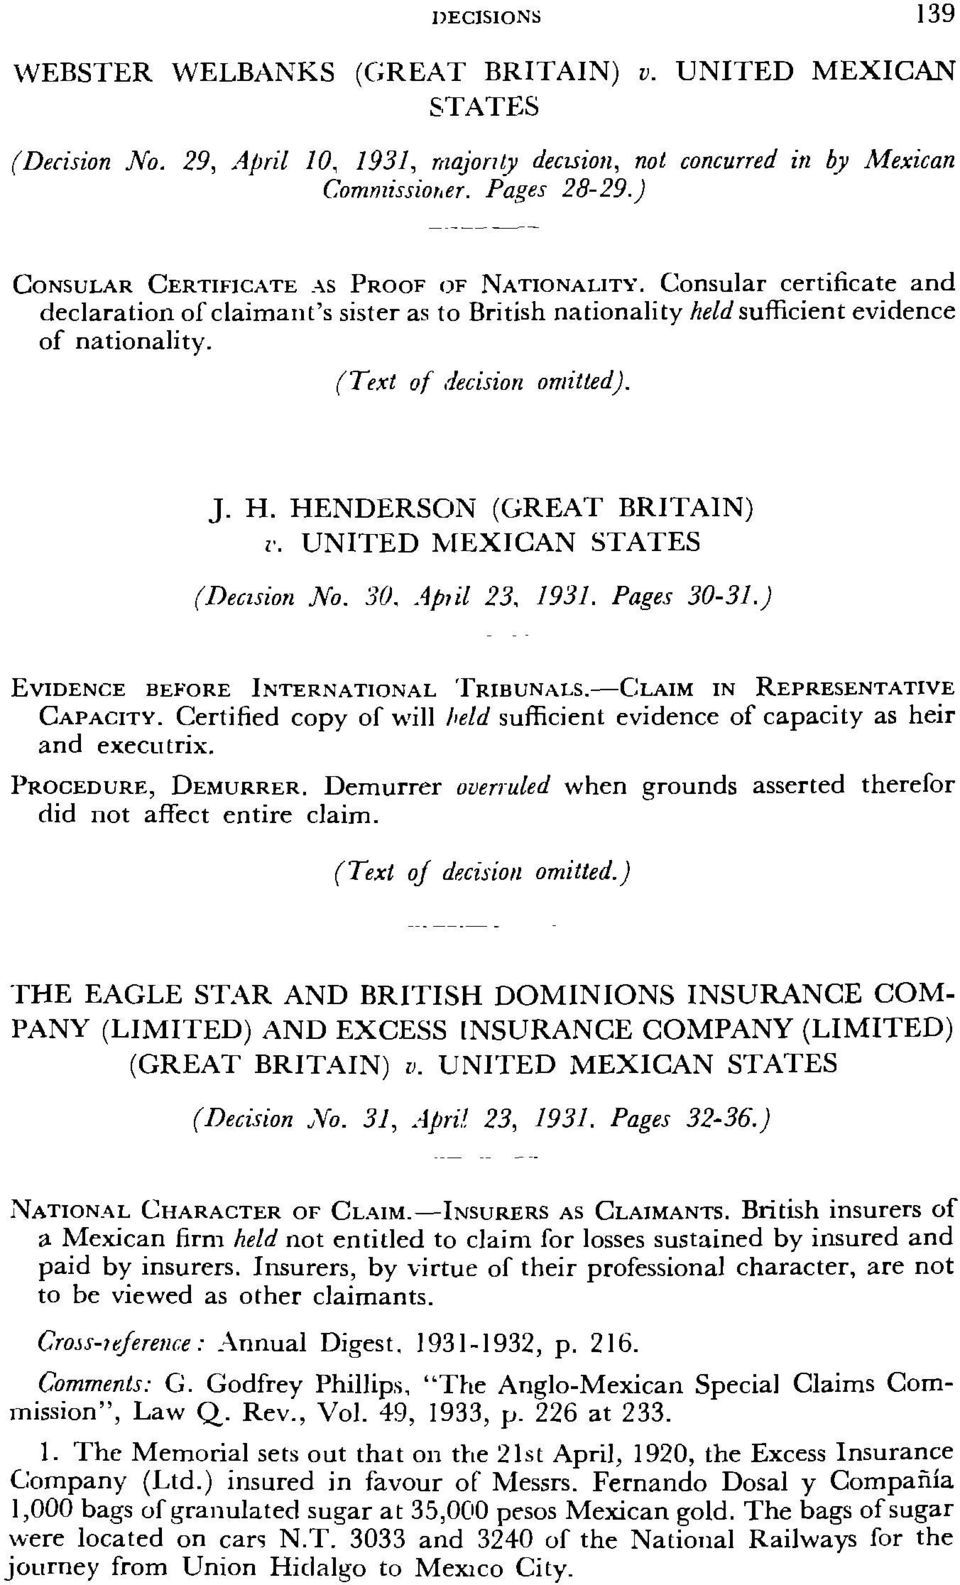 J. H. HENDERSON (GREAT BRITAIN) v. UNITED MEXICAN STATES (Decision No. 30. Apiil 23, 1931. Pages 30-31.) EVIDENCE BEFORE INTERNATIONAL TRIBUNALS. CLAIM IN REPRESENTATIVE CAPACITY.